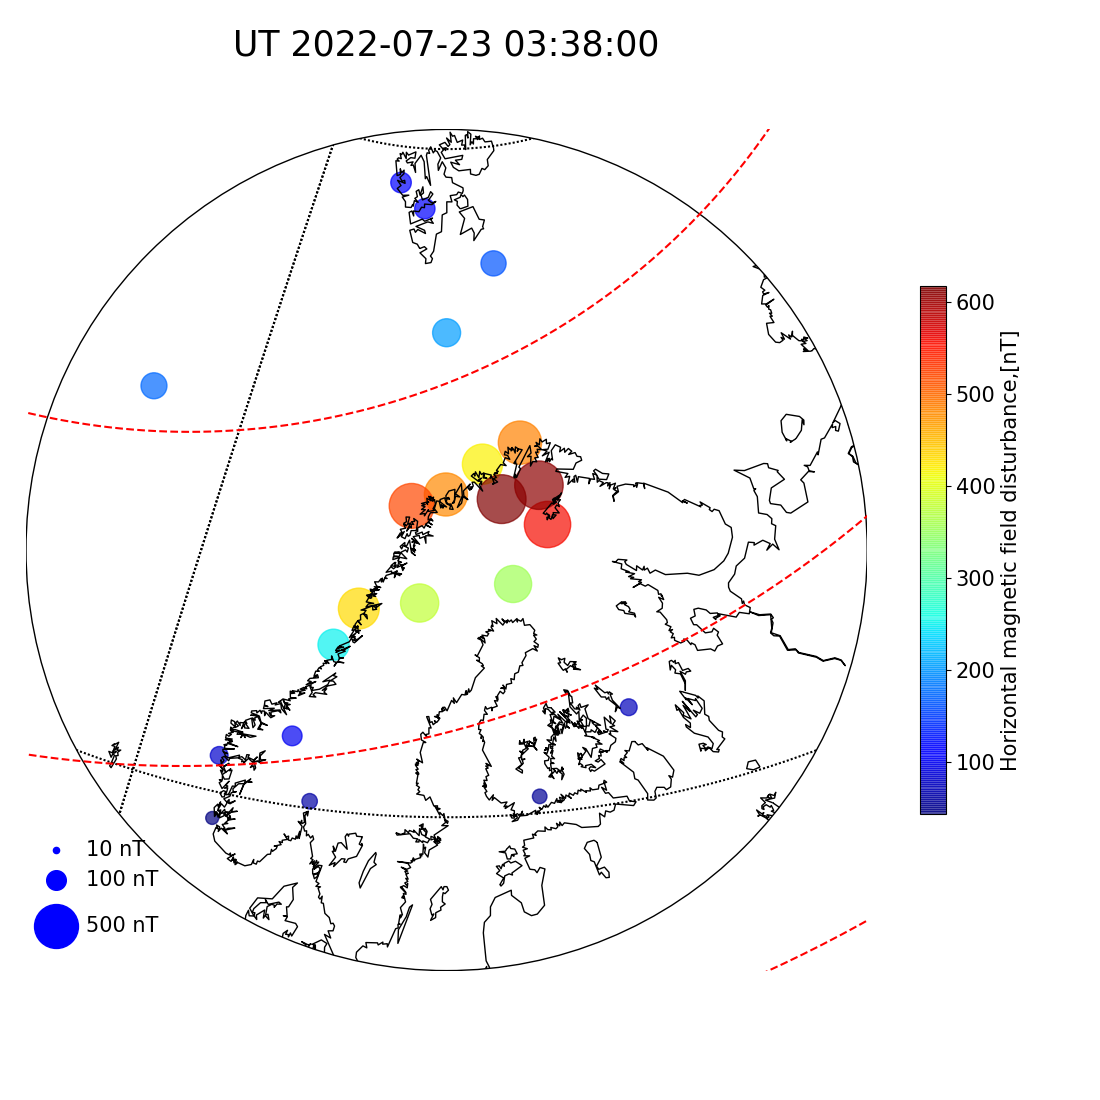 Real-time geomagnetic activity